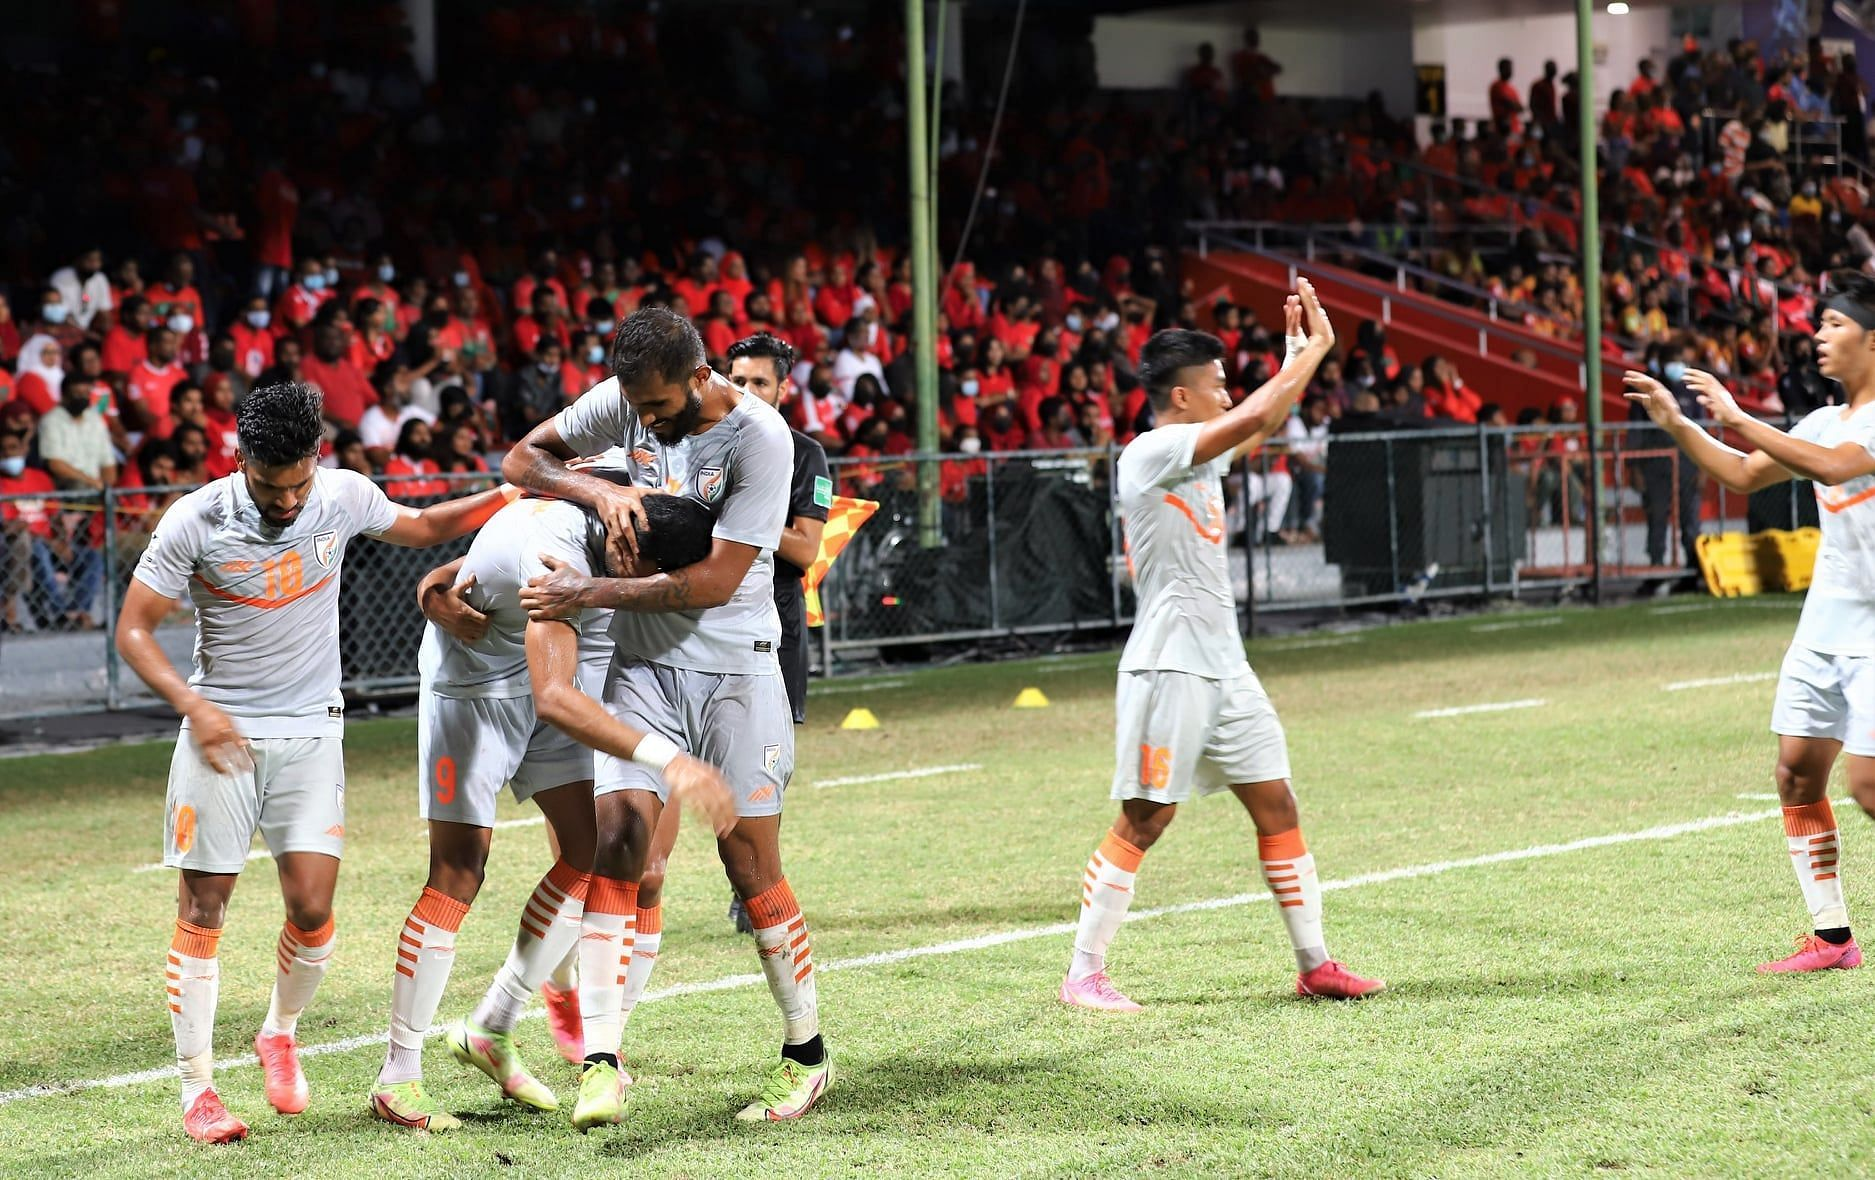 India beat Maldives 3-1 to finish top of the SAFF Championship 2021 standings. (Image: SAFF)